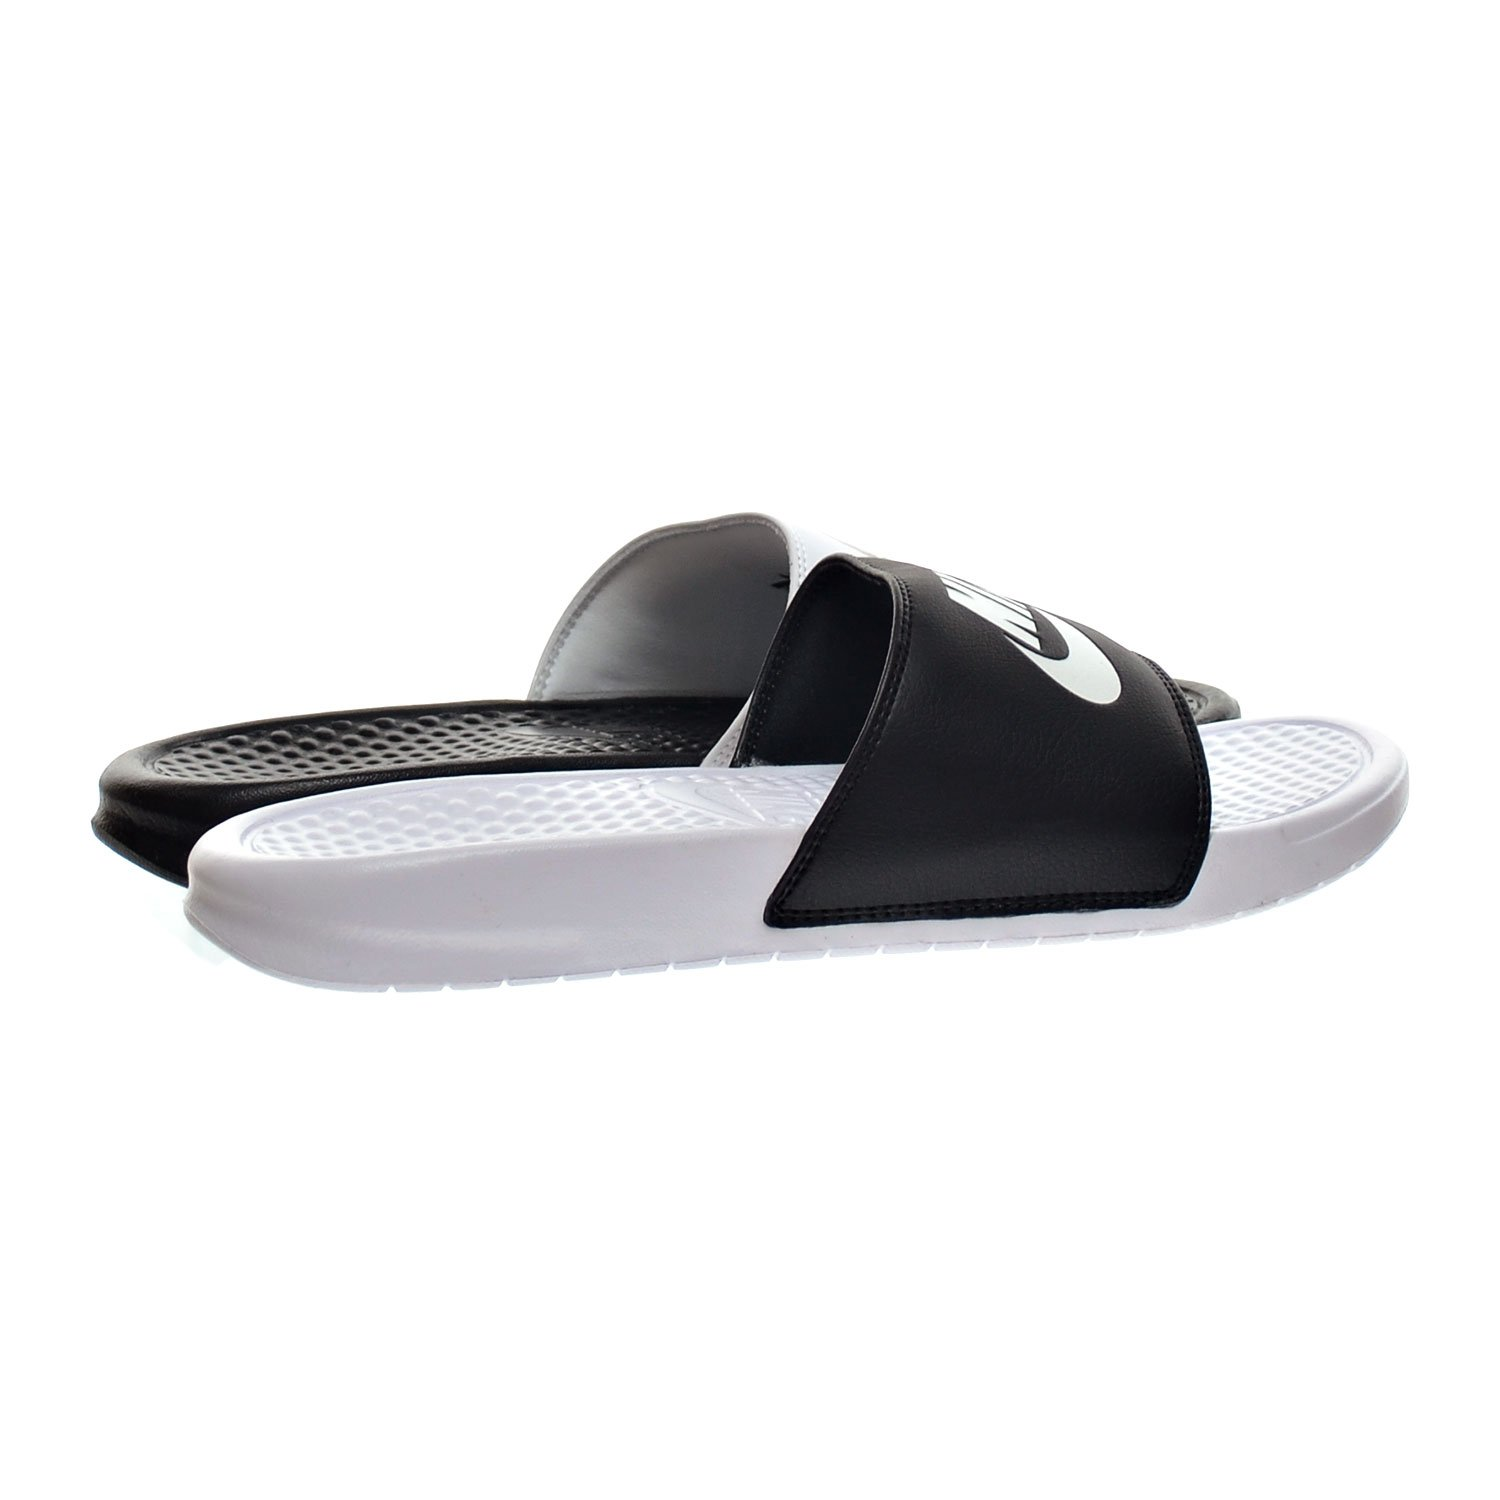 f924f48ede0a Nike Benassi JDI Mismatch Men s Sandals Black White 818736-011 (13 D(M)  US)  Amazon.ca  Shoes   Handbags